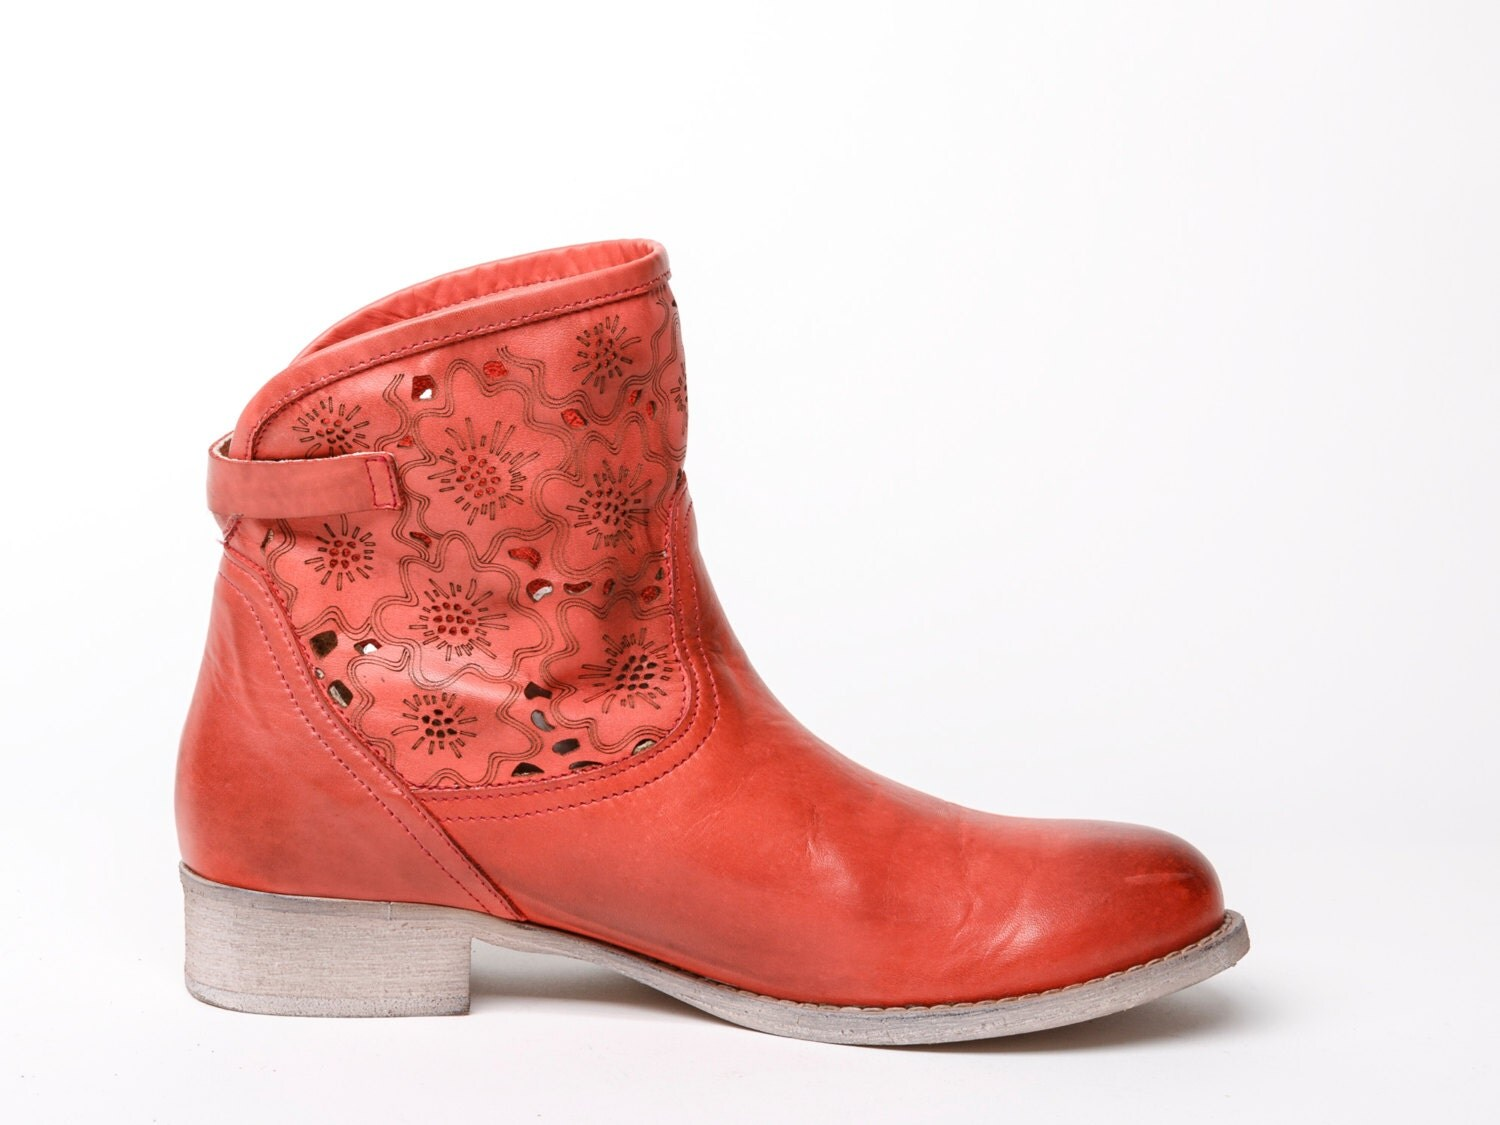 Cool Repetto Red Leather Boots For Women - @WOMENSHOES